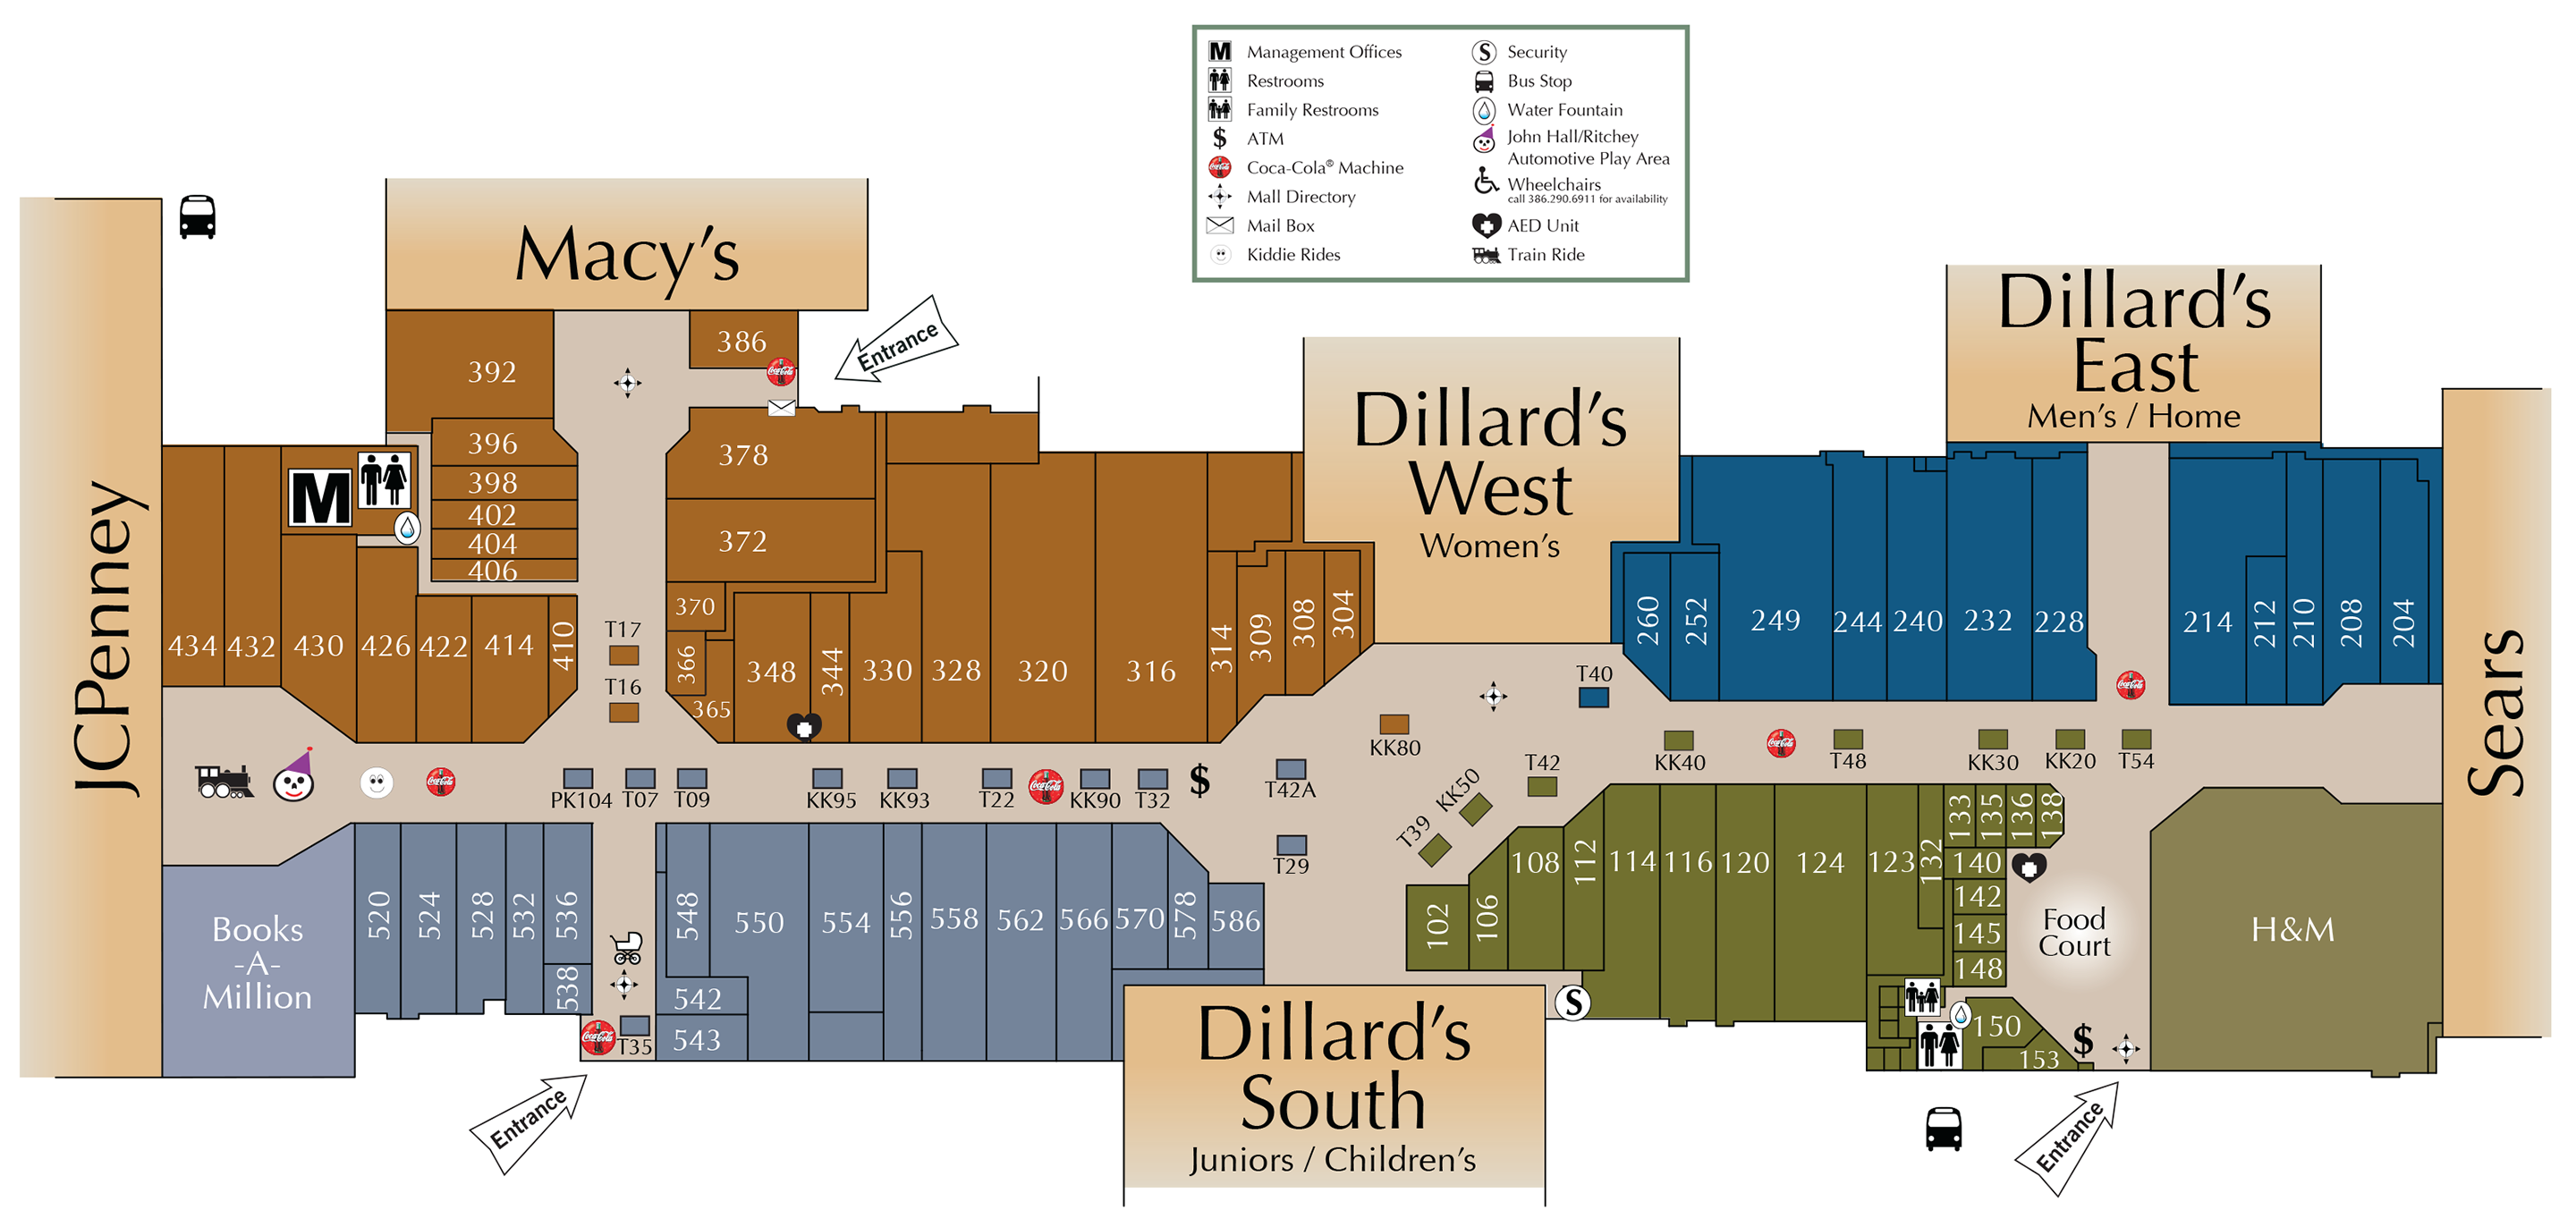 Mall Directory Volusia Mall - Florida mall map